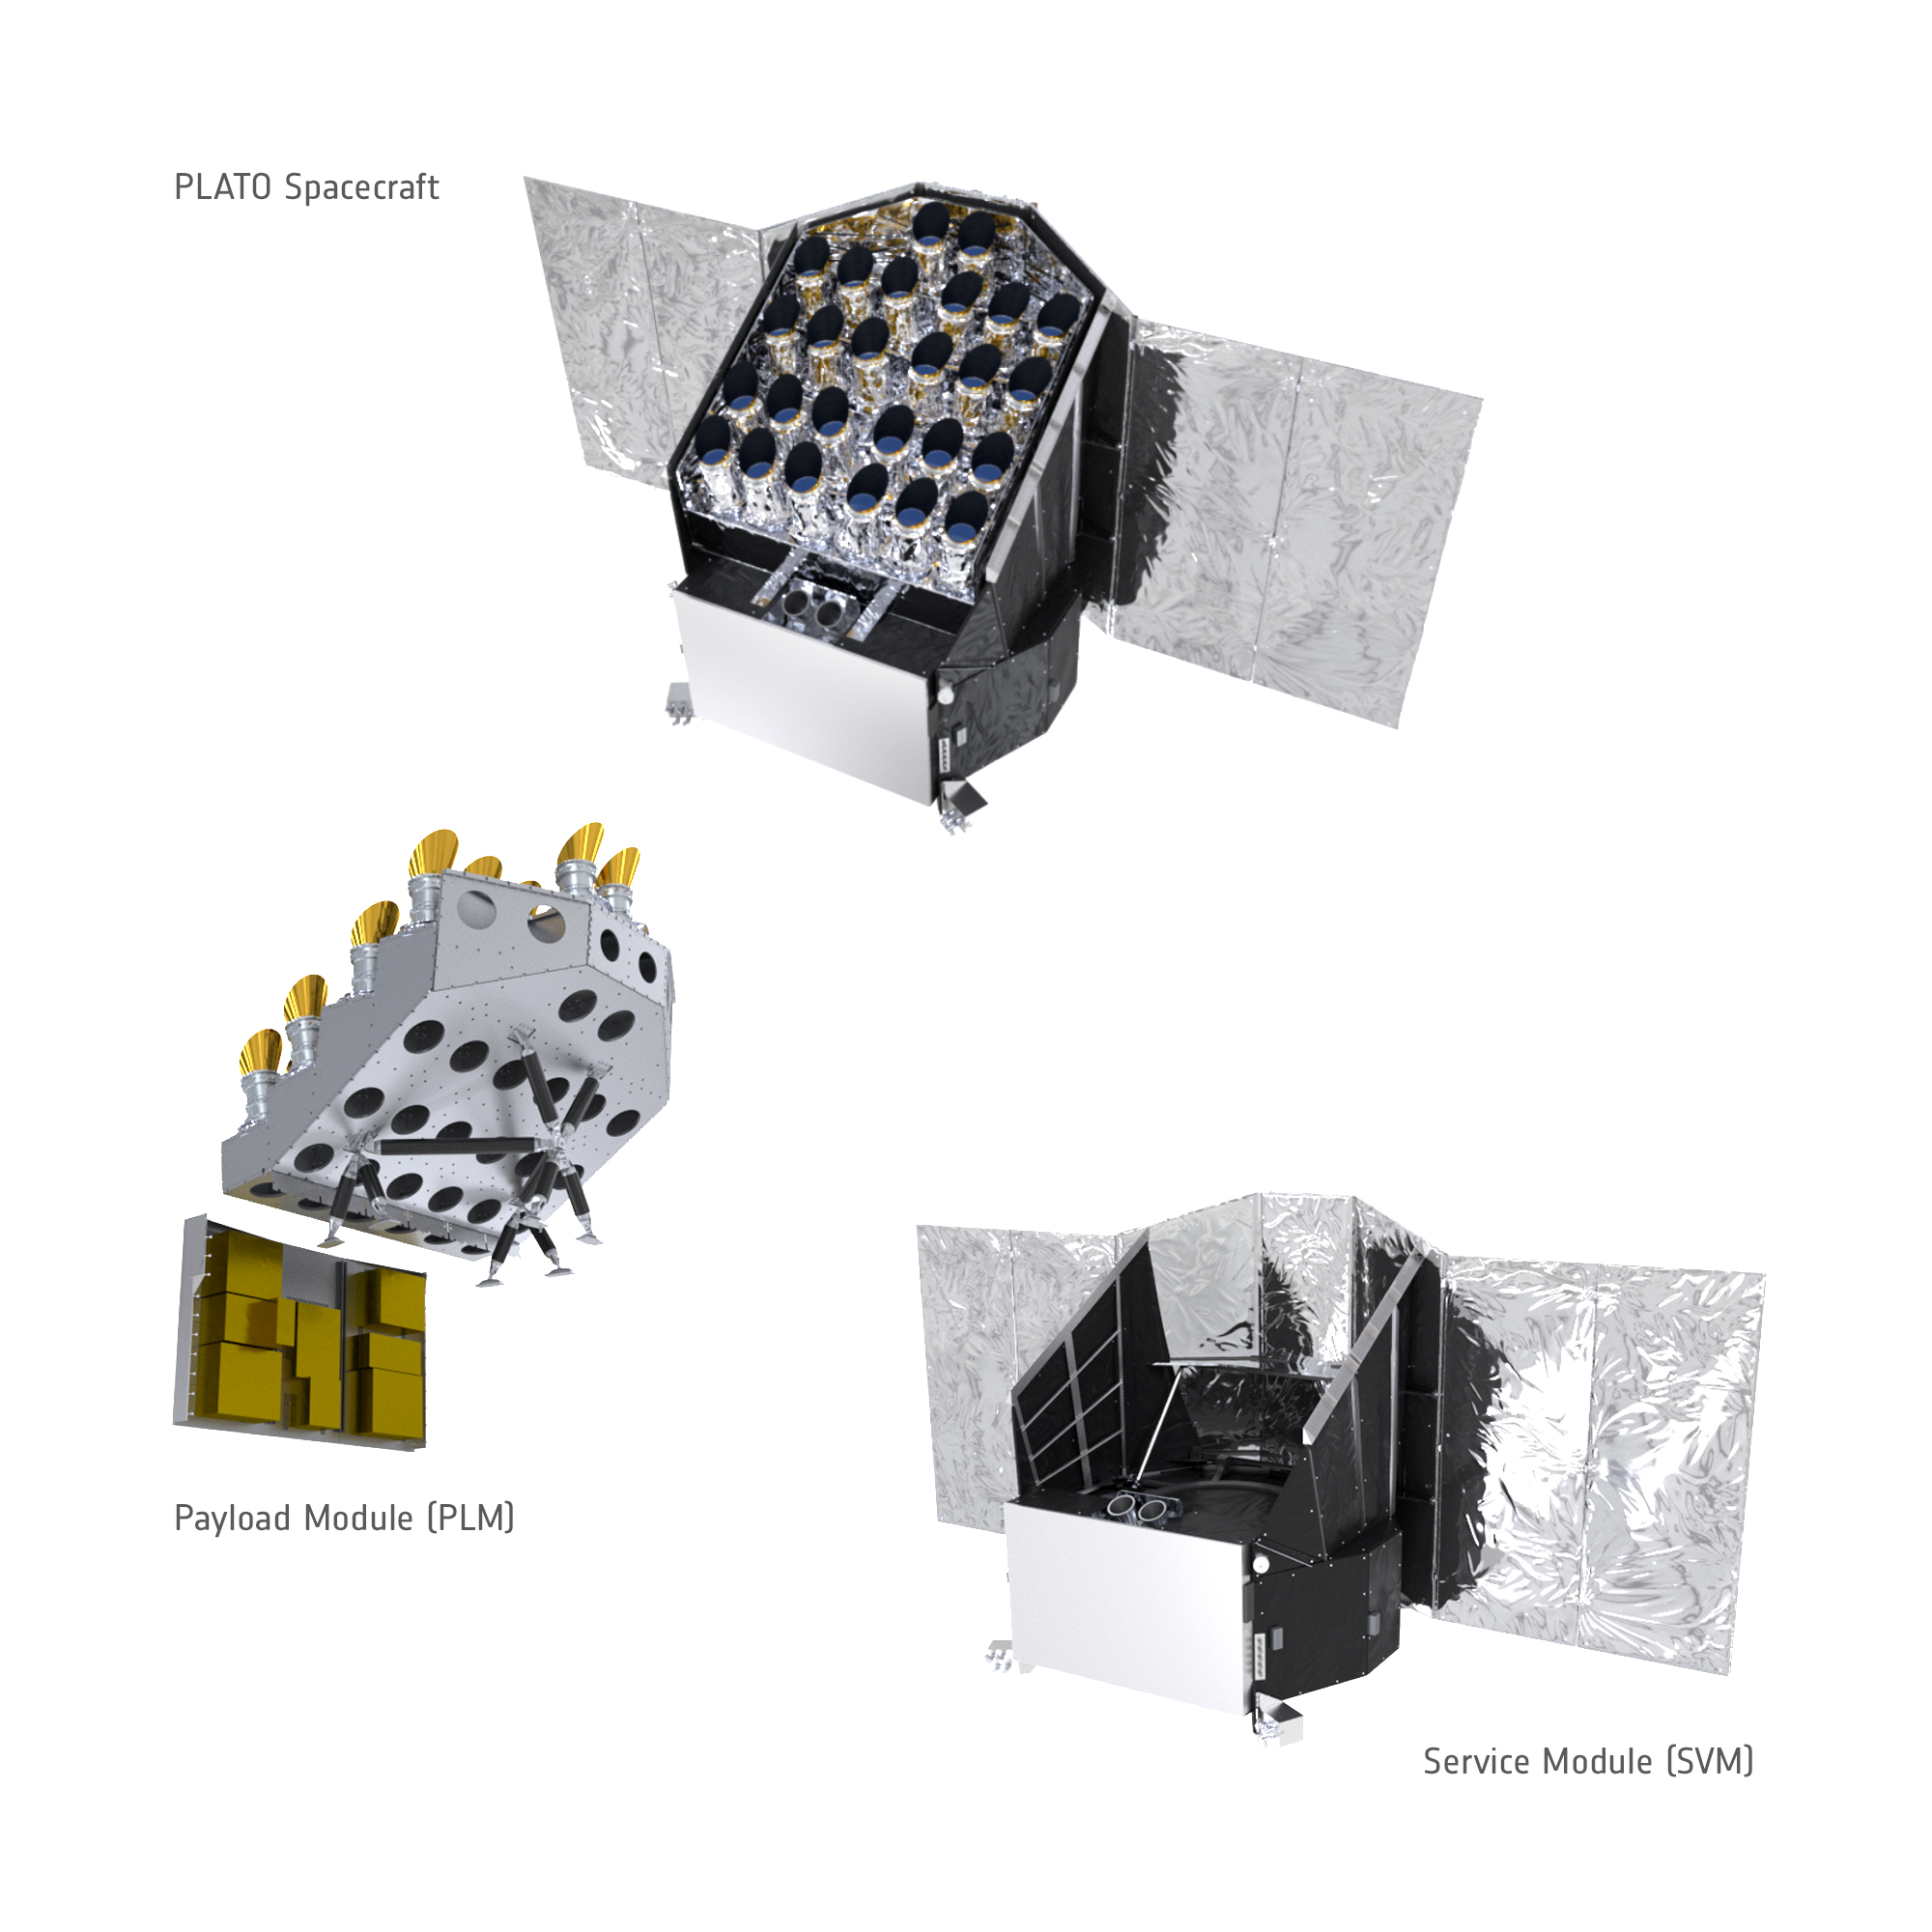 PLATO_spacecraft_modules.jpg